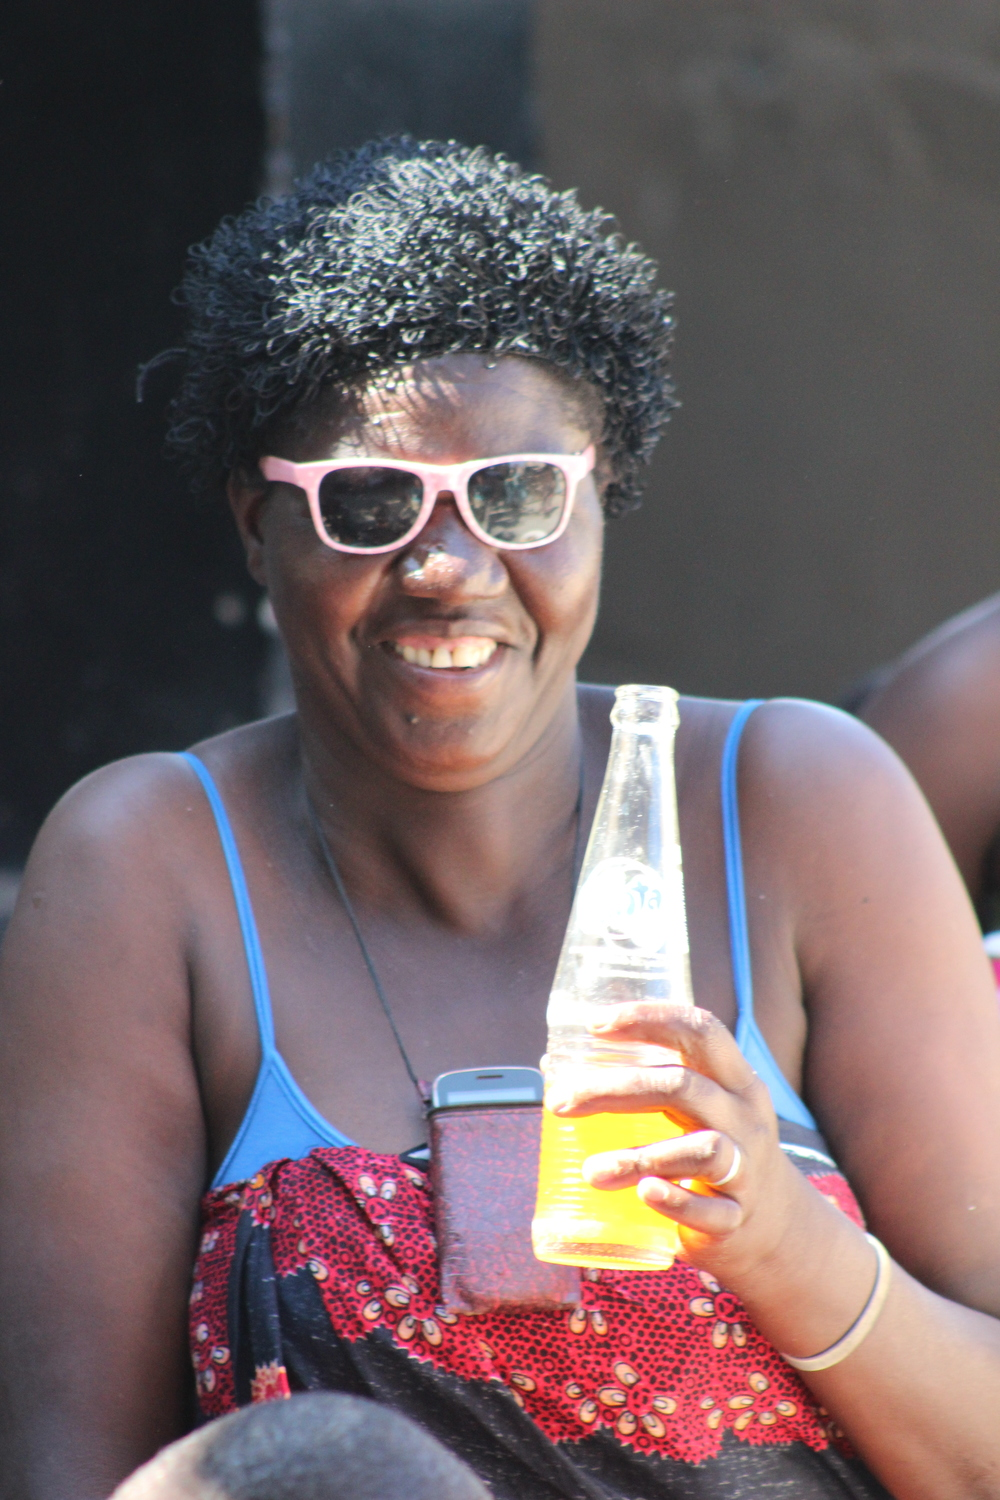 Mayi Bokho rockin' the shades and fanta!